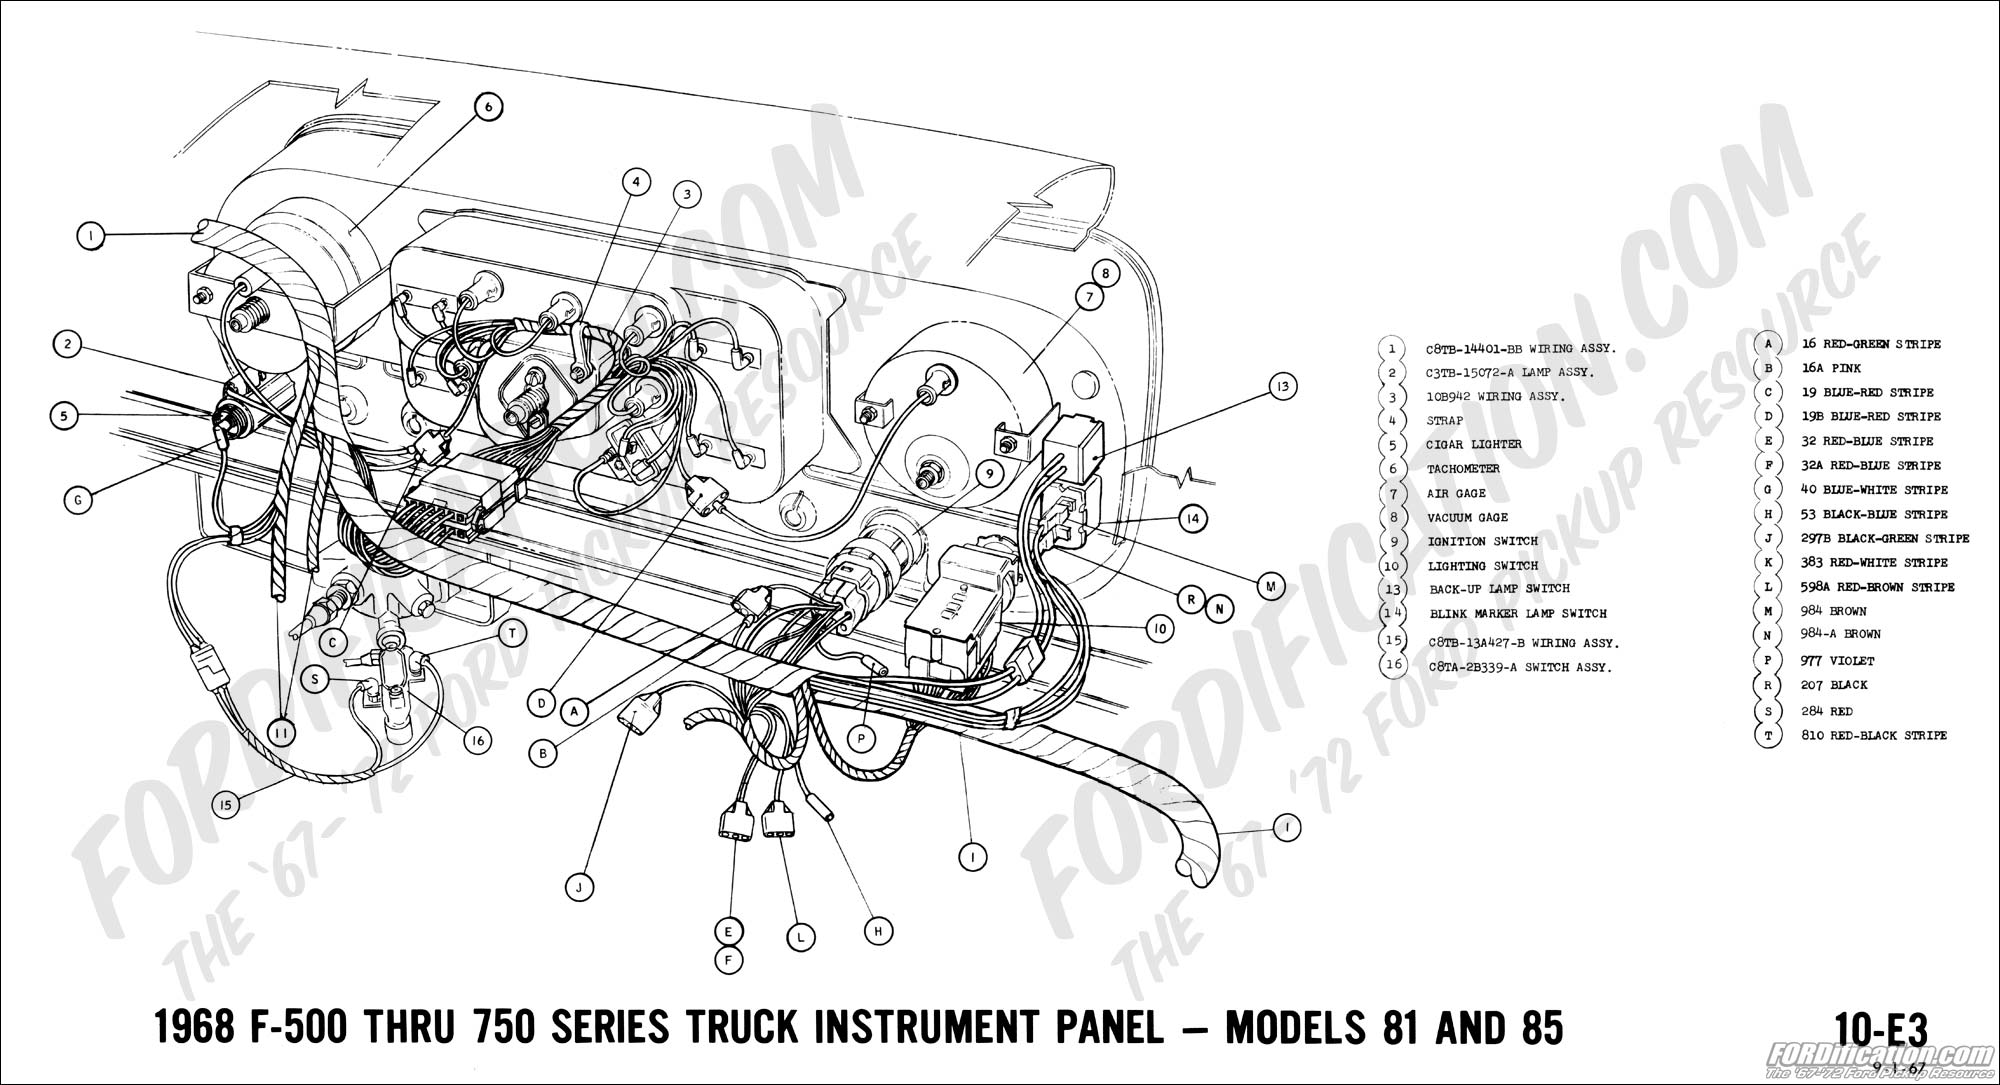 1970 f350 wiring diagram ford f wire diagram wirdig wiring diagram ford f wiring diagram auto wiring diagram schematic 88 ford f600 wiring diagram 88 home wiring